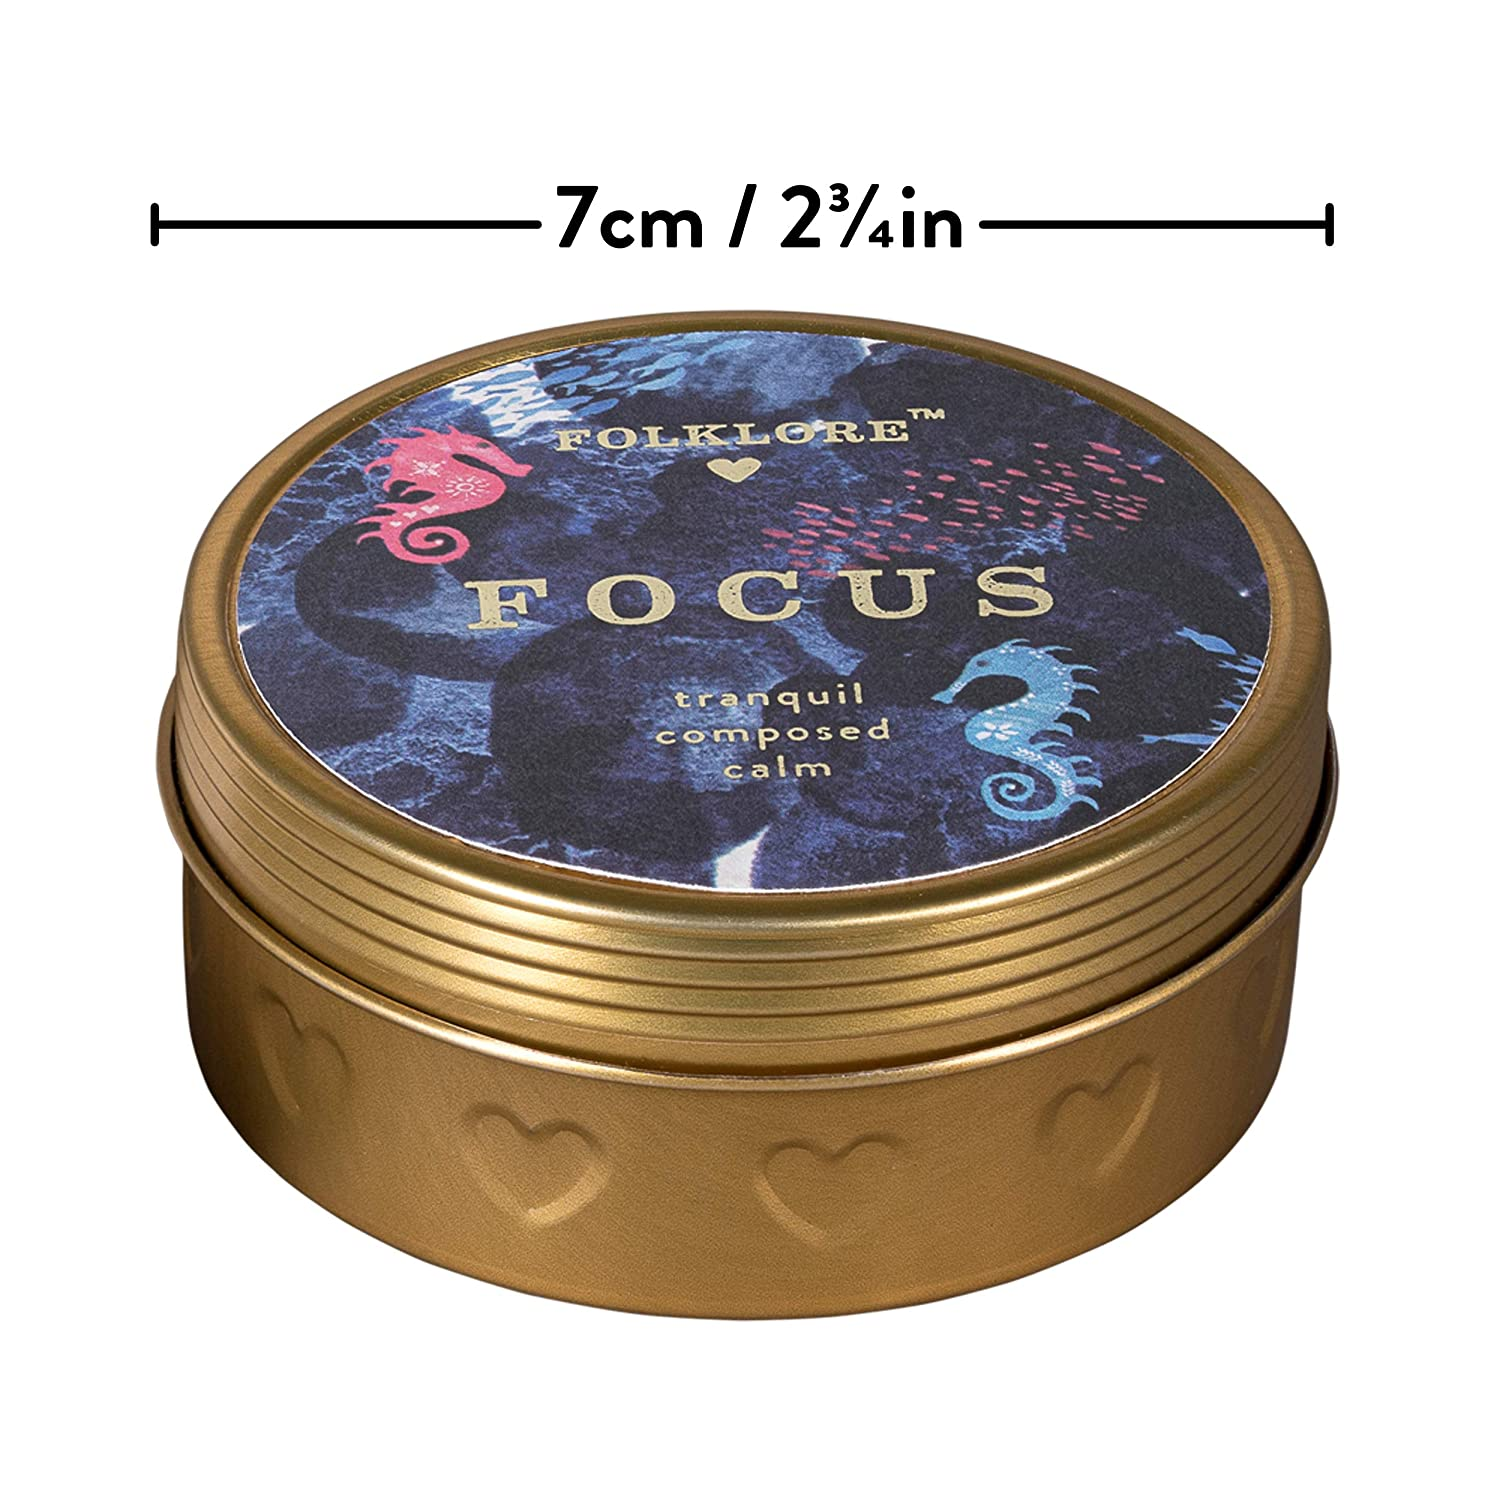 2.8 oz Gold Folklore 100/% Soy Wax Focus Rosemary /& Mint Scented Travel Candle with Tin